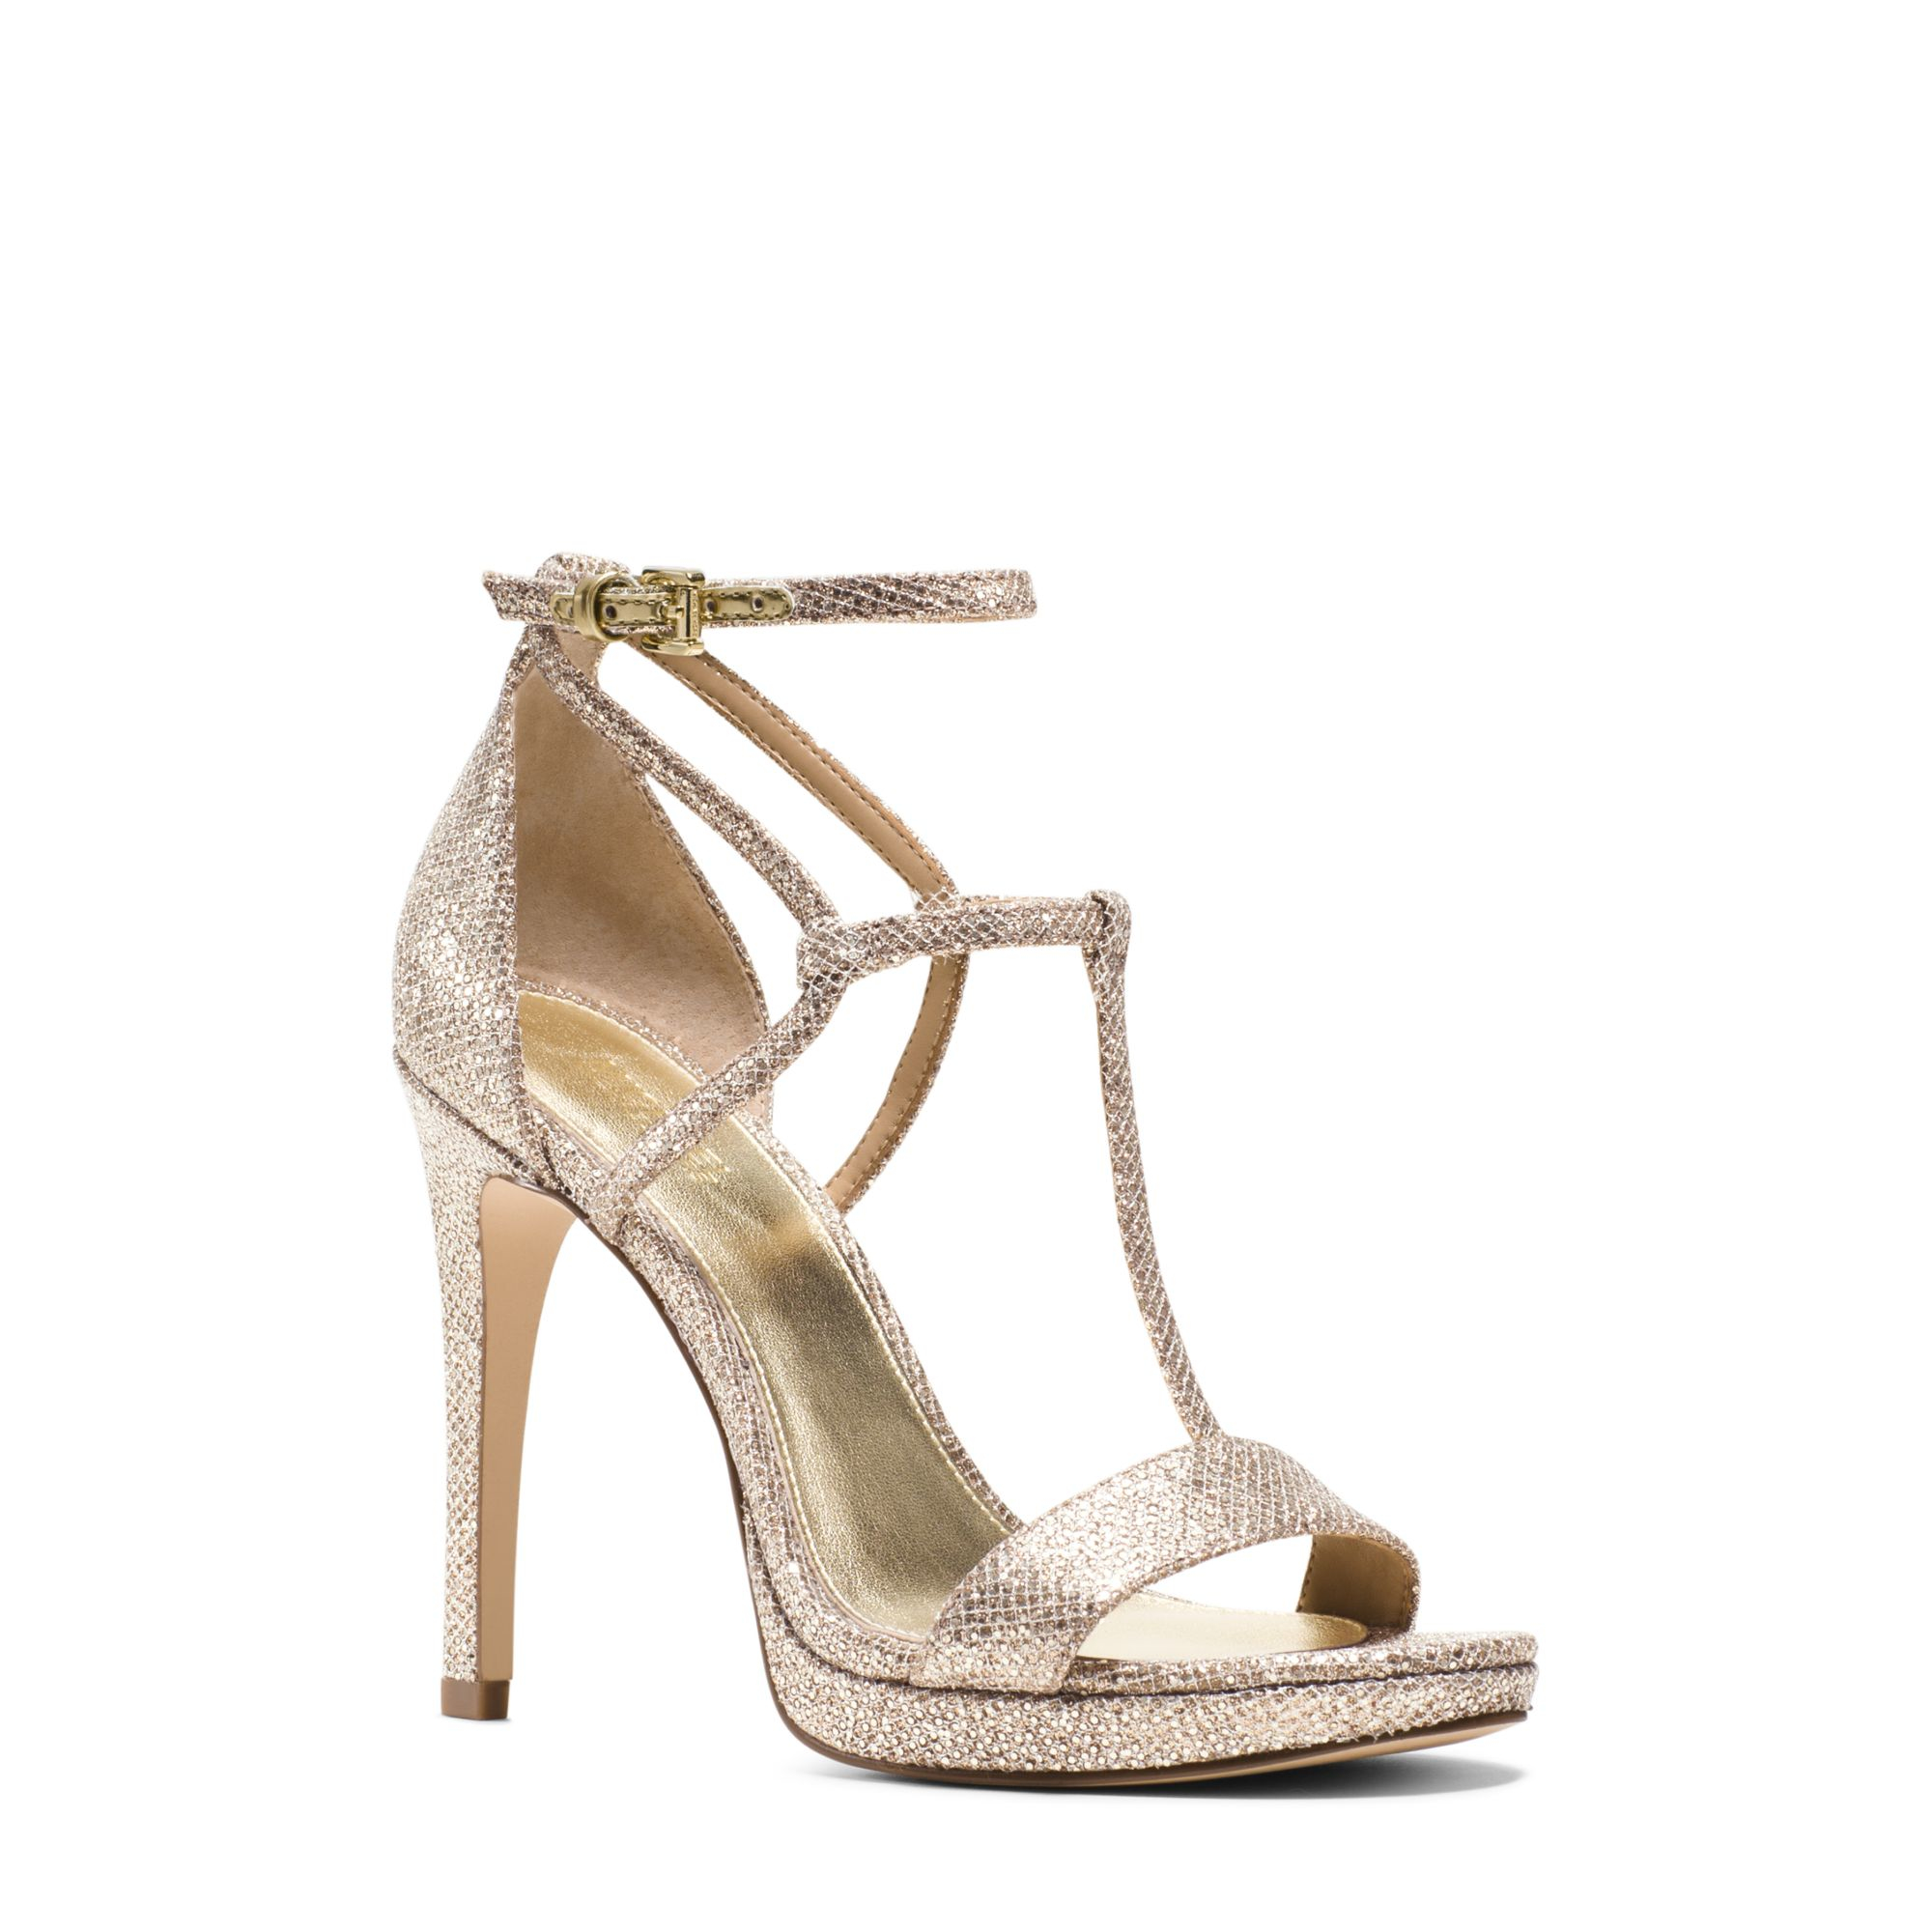 a75b87d3e984 Lyst - Michael Kors Simone Glitter Leather Sandal in Metallic